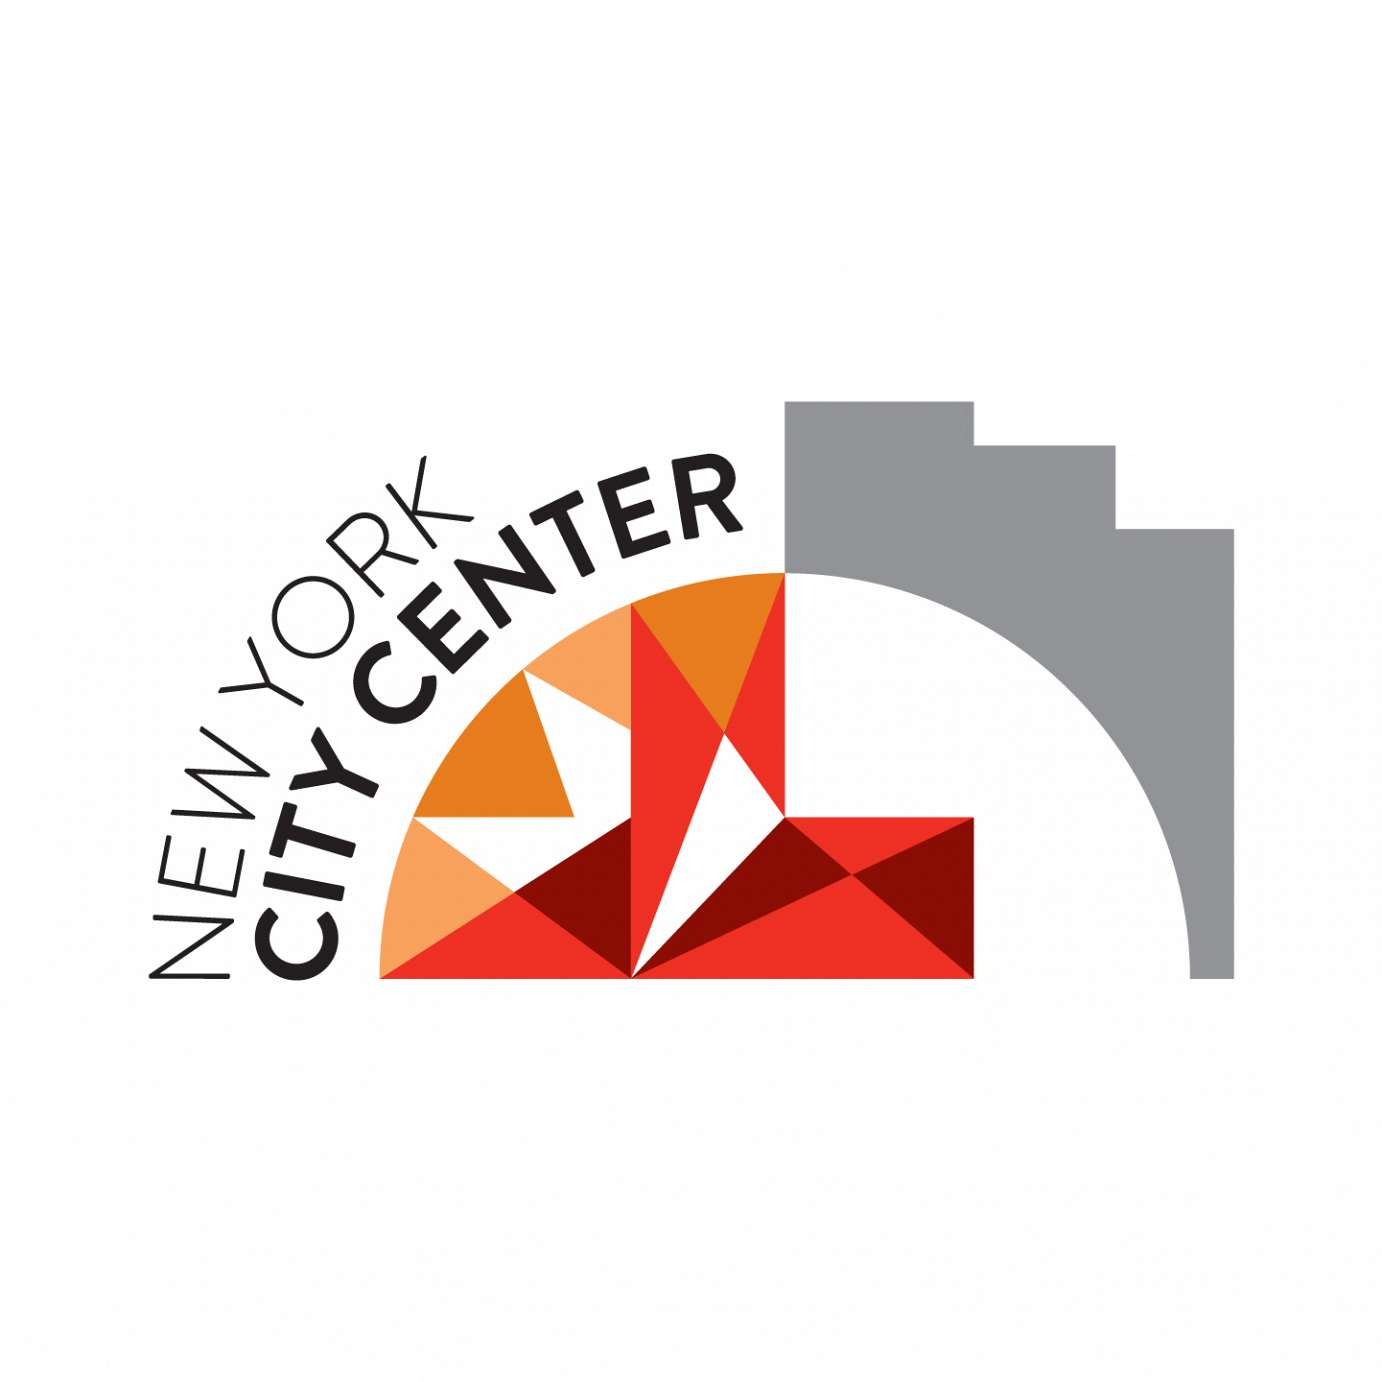 New York City Center Logo